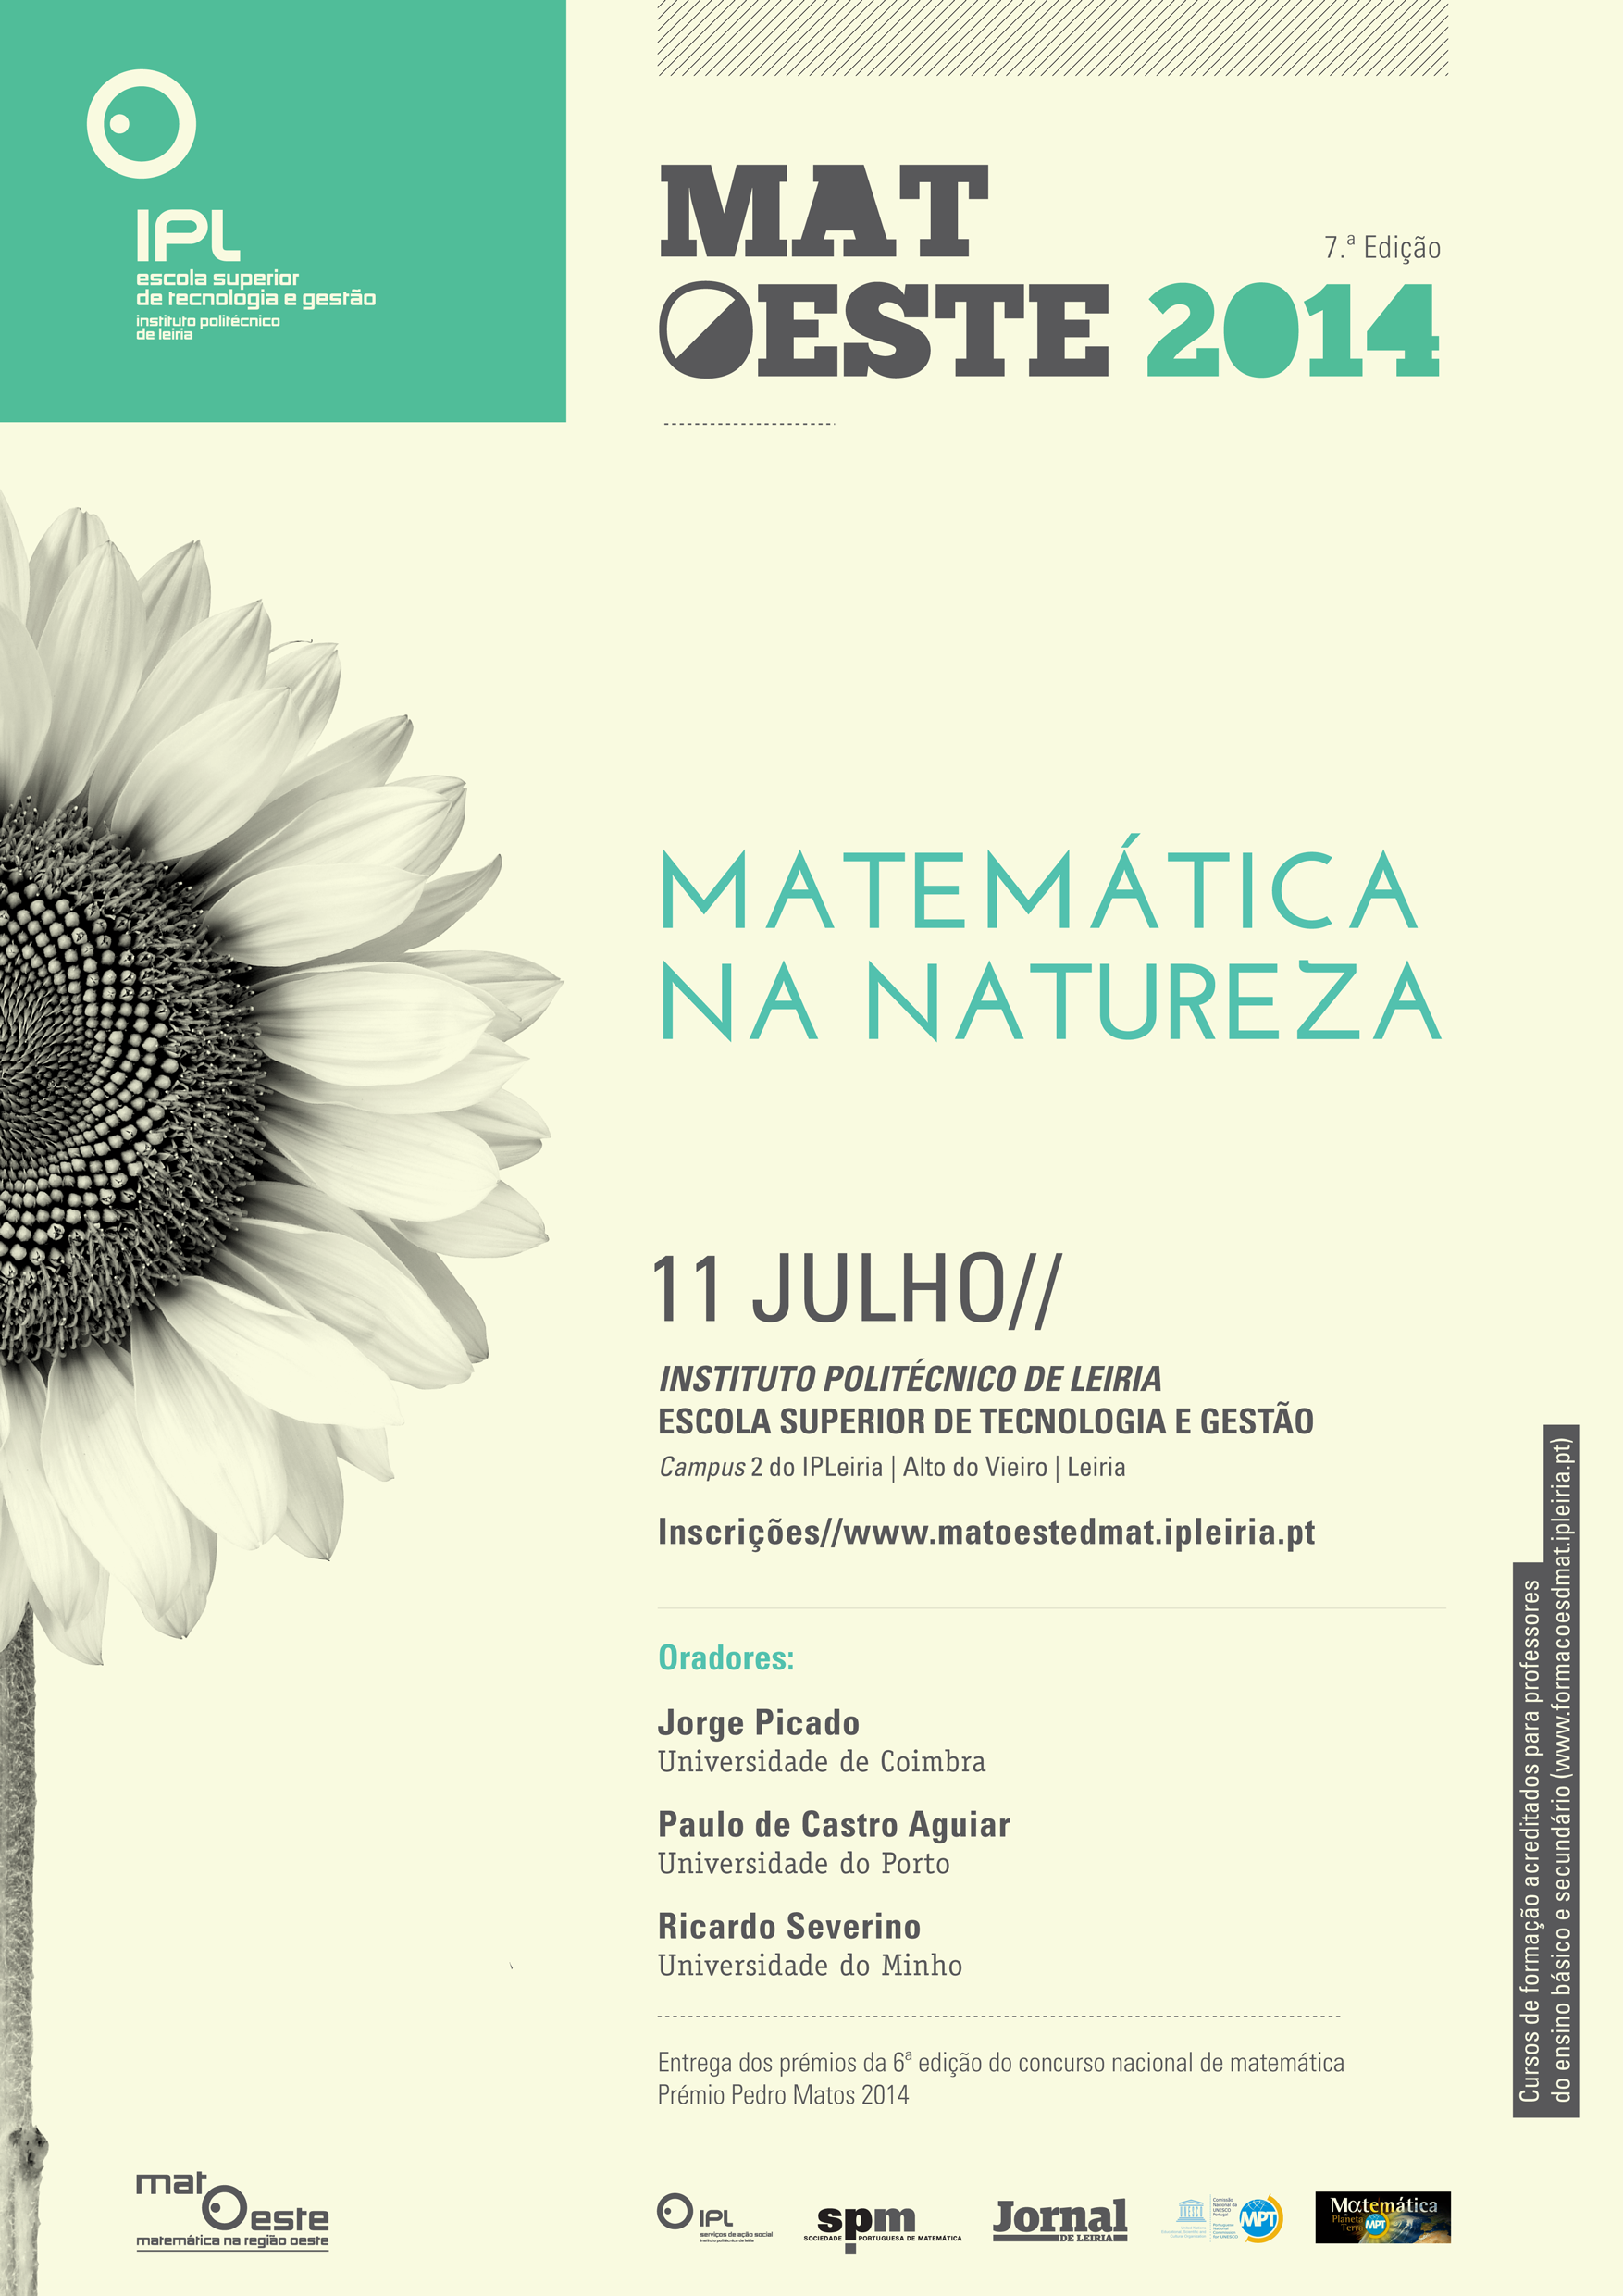 Cartaz do Mat-Oeste 2014